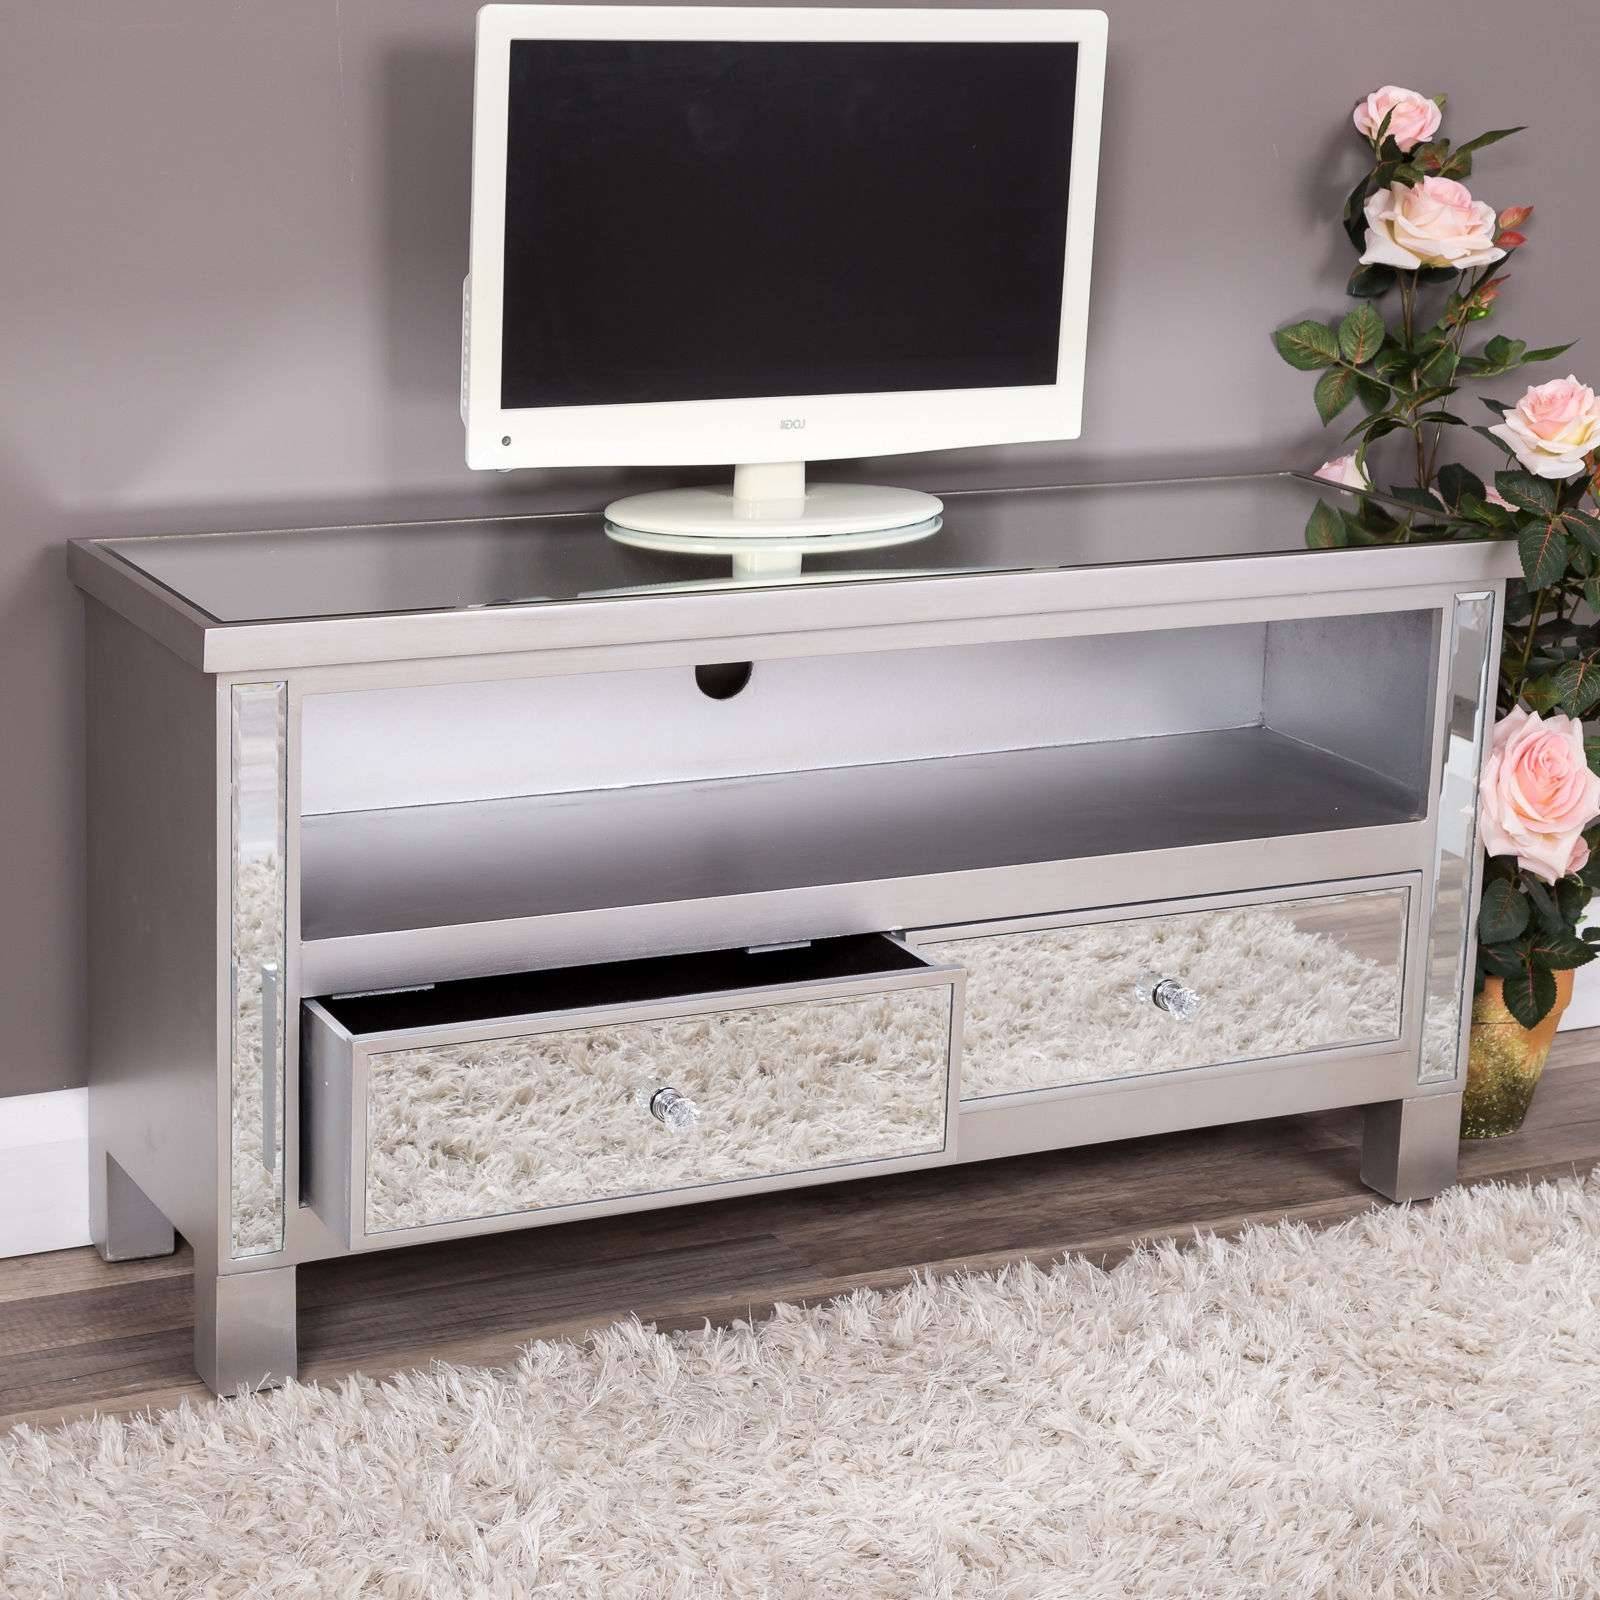 Silver Mirrored Glass 2 Drawer Tv Entertainment Cabinet Stand Unit Intended For Mirror Tv Cabinets (View 17 of 20)